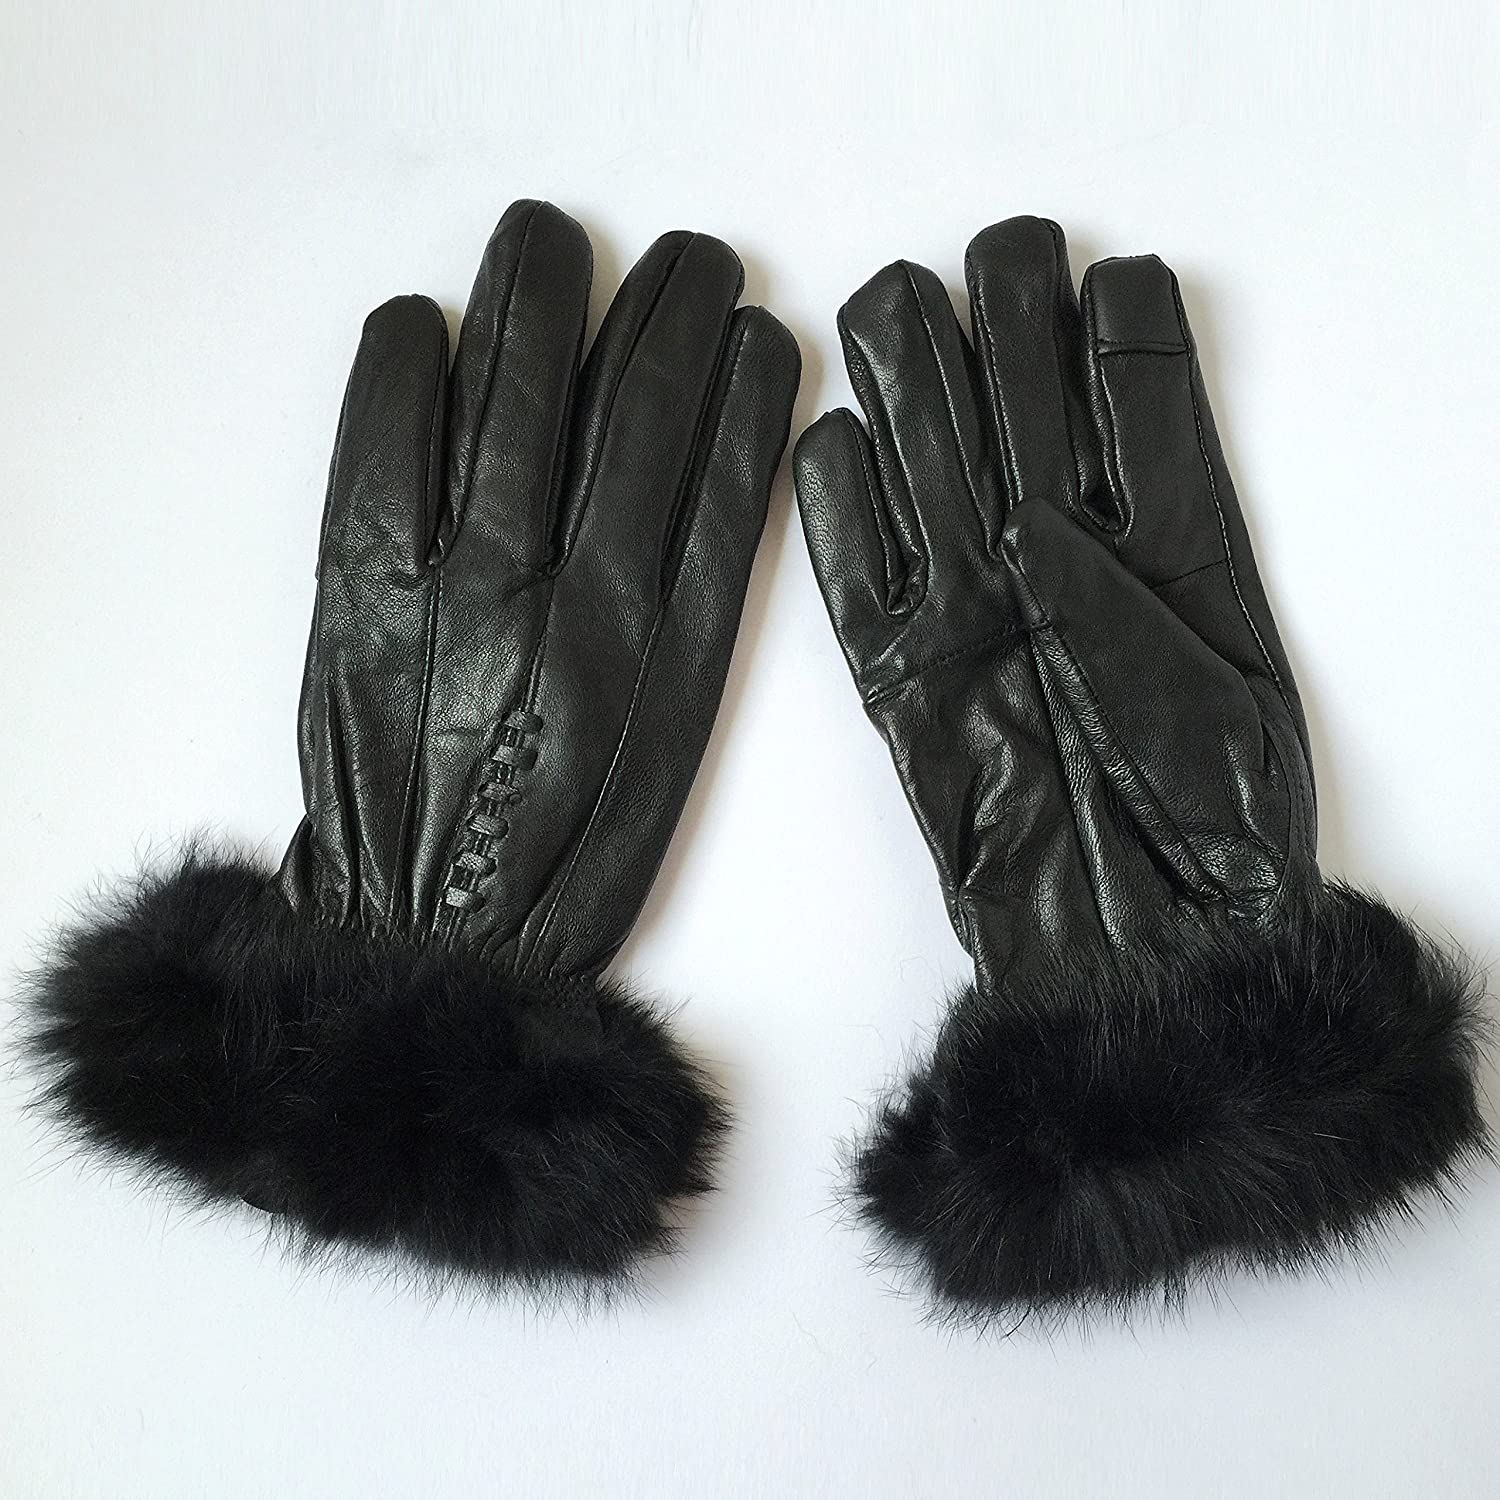 Ladies thermal leather gloves uk - Ladies Genuine Leather Gloves Thinsulate Fleece Lined Driving Soft Winter Warm Touch Screen X Large Amazon Co Uk Clothing